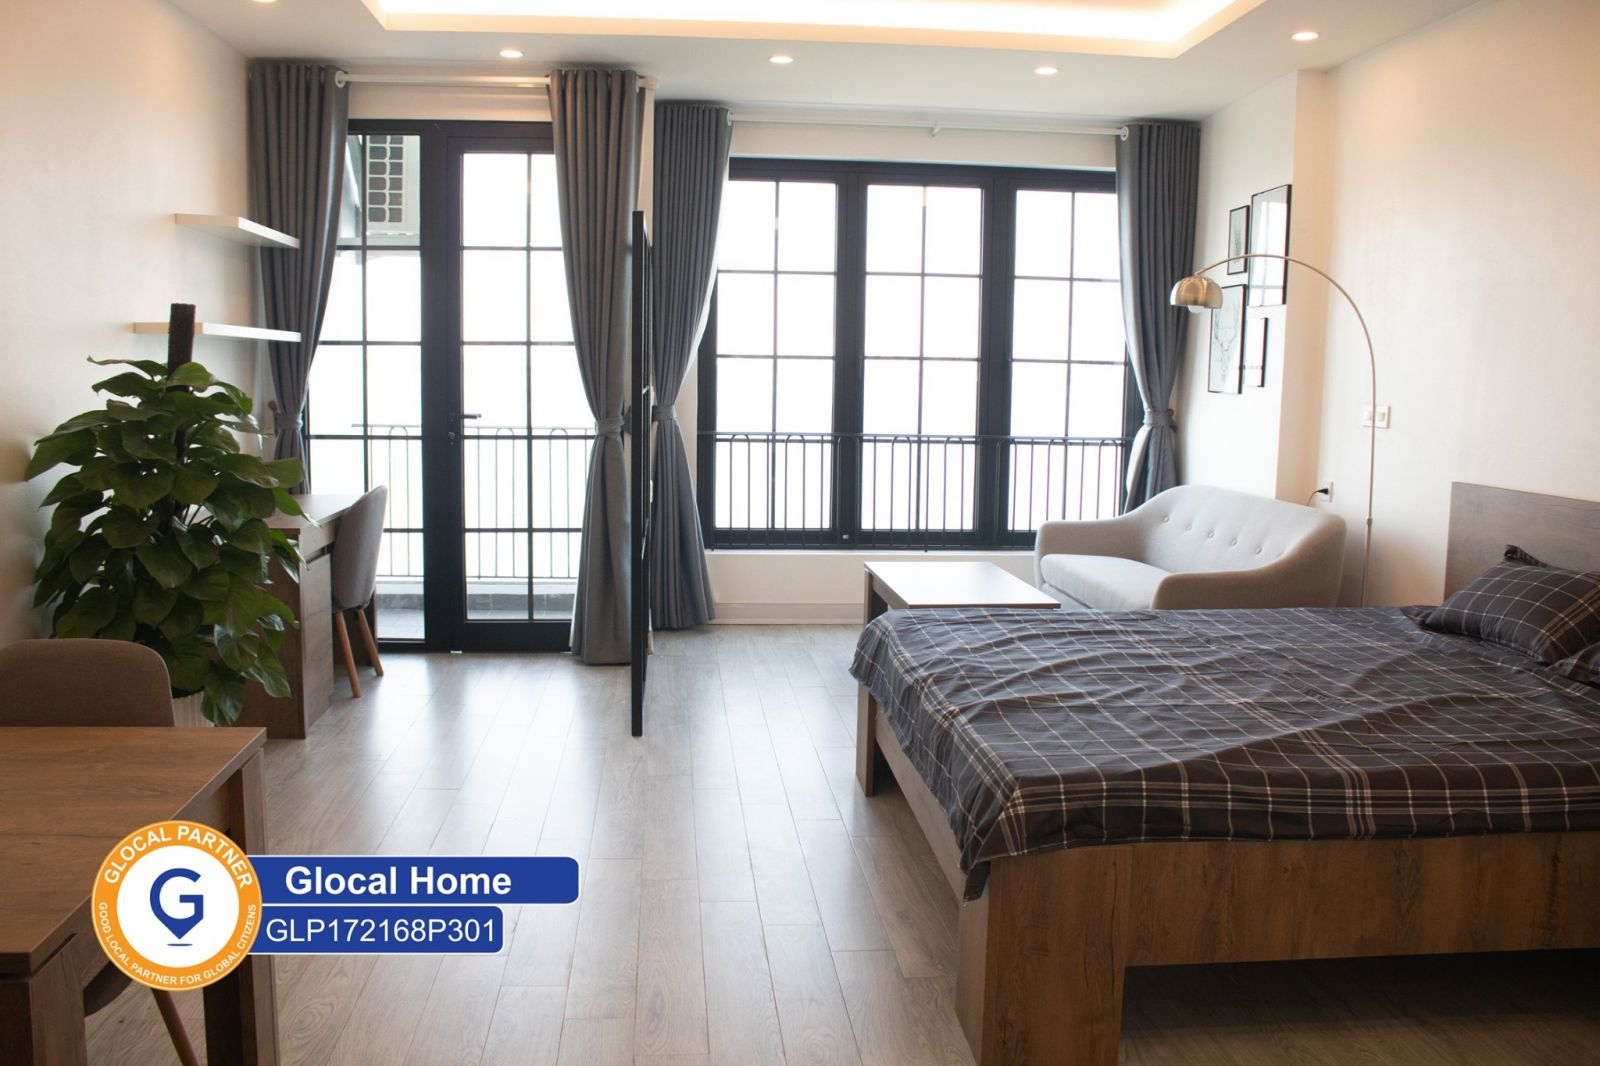 1 bedroom apartment with West lake view in Vu Mien street